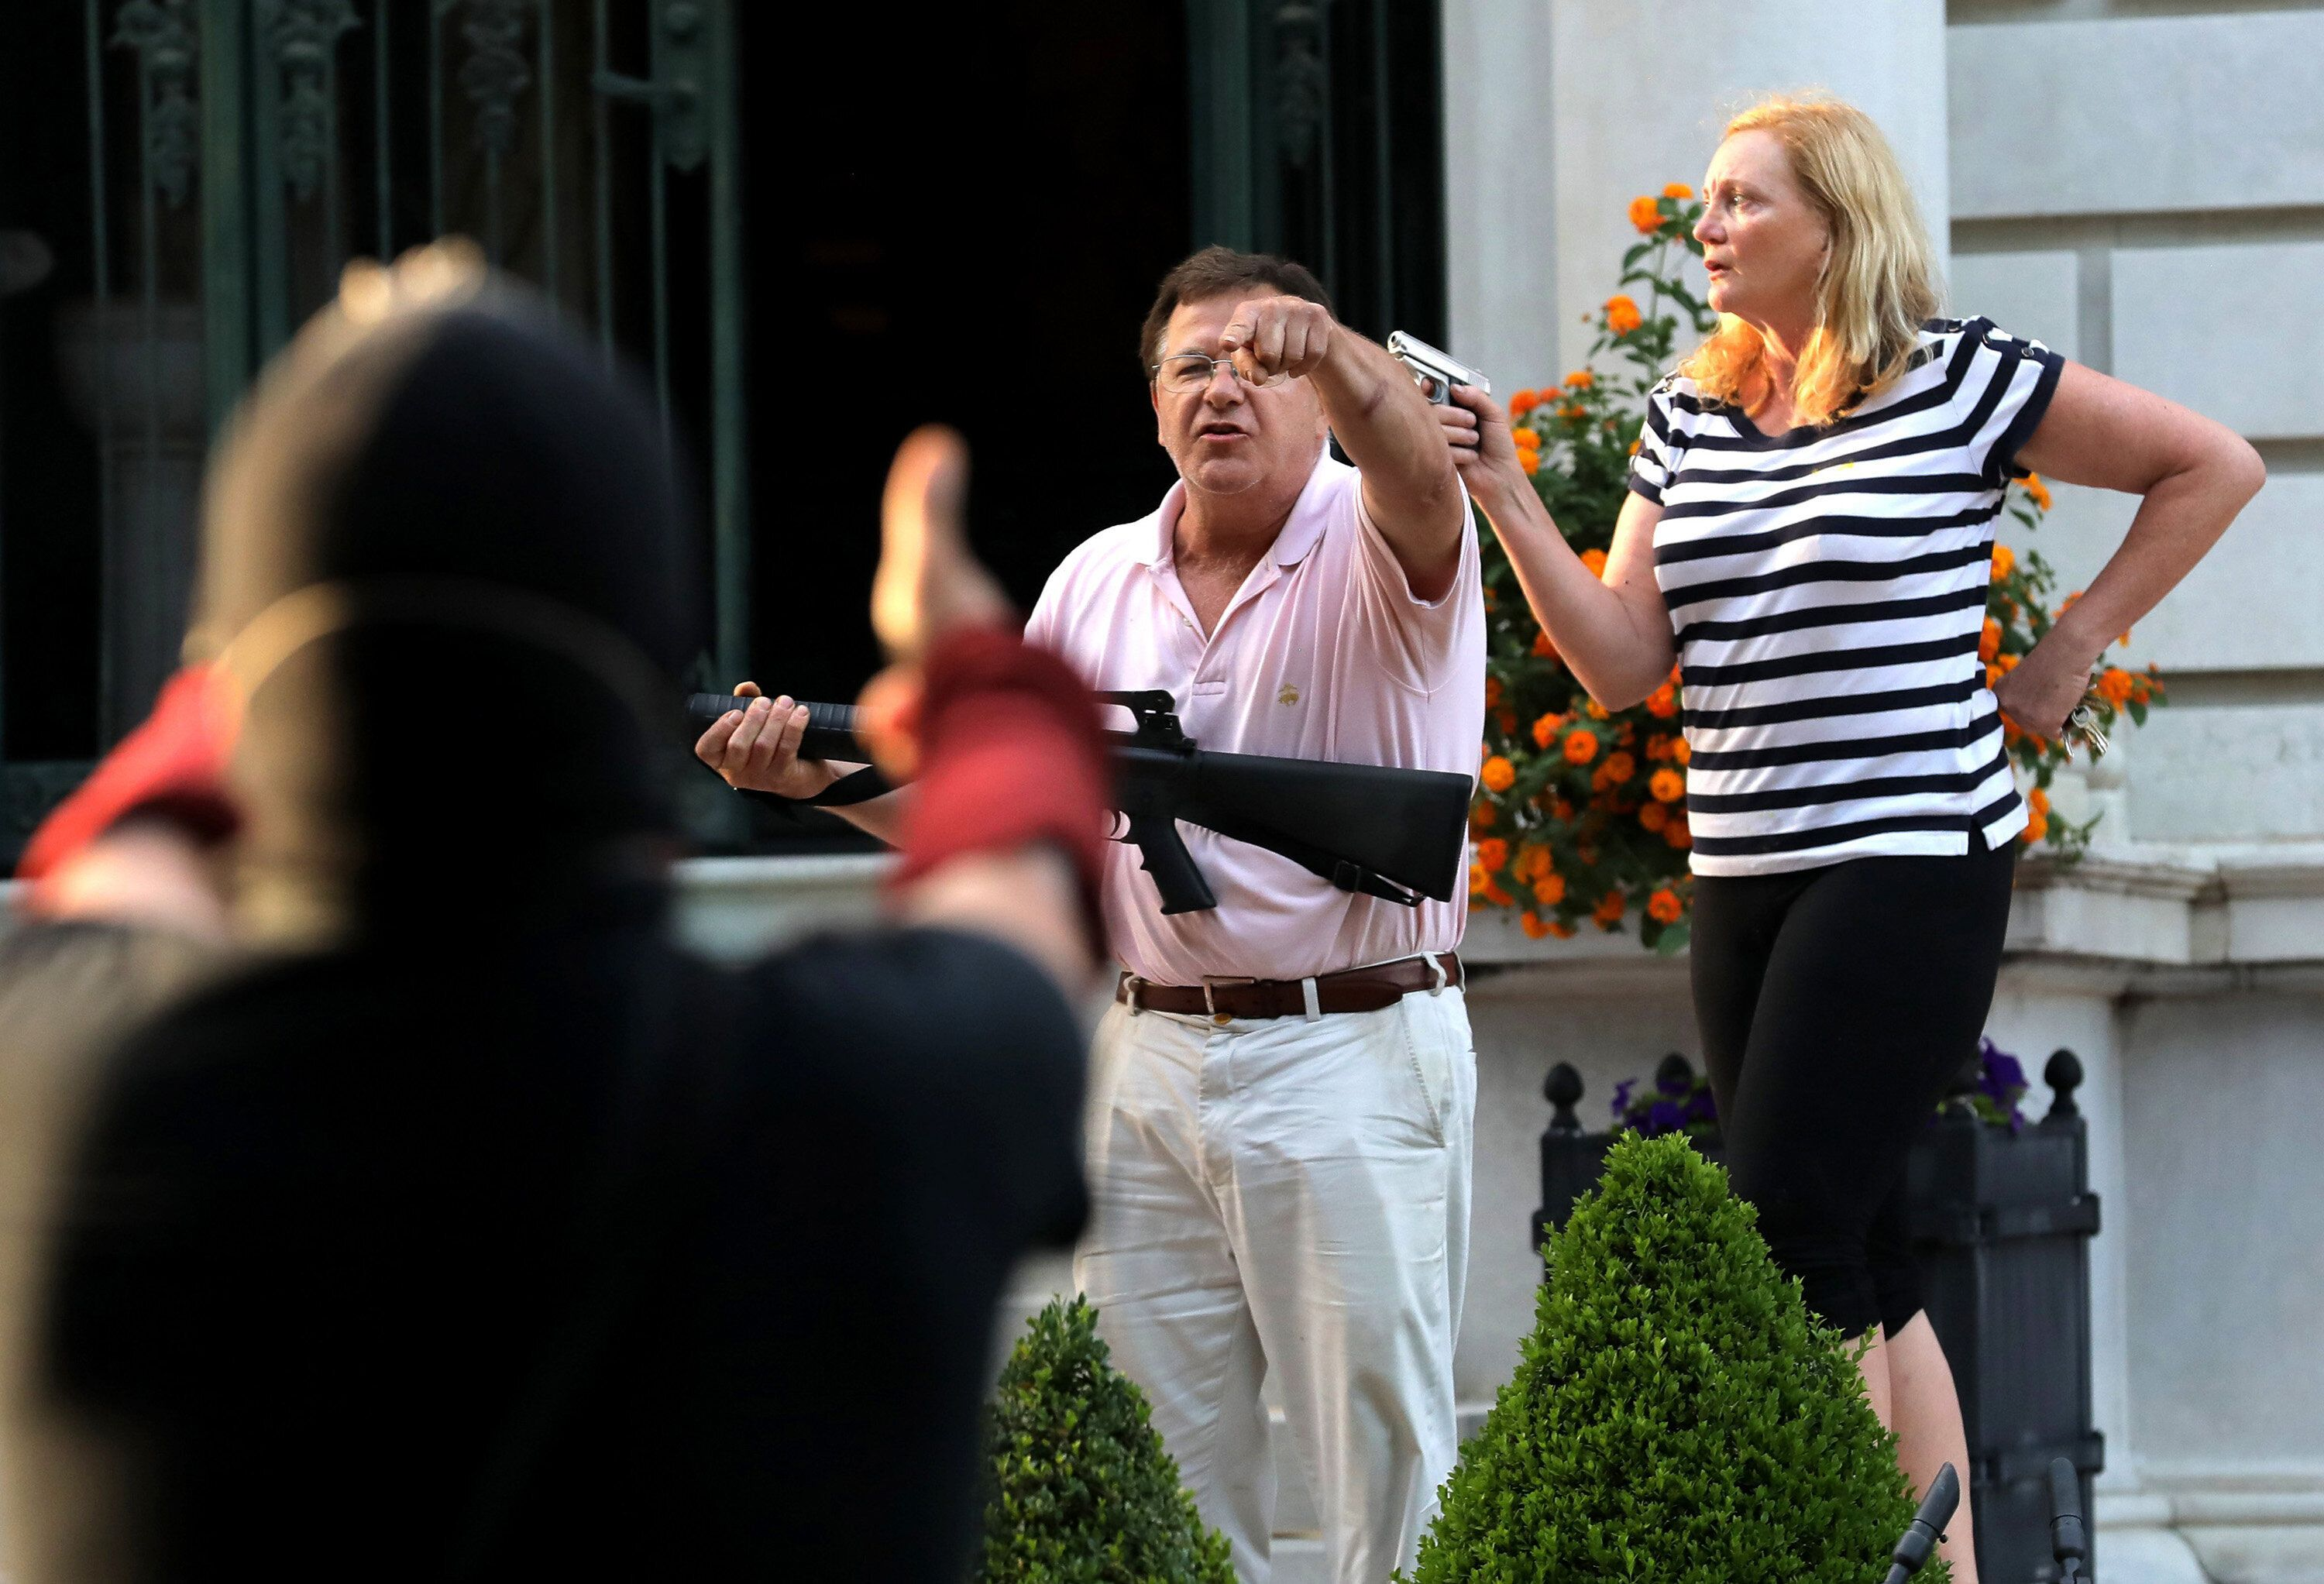 Mark and Patricia McCloskey, pictured here confronting protesters with guns outside their St. Louis home this summer, told th